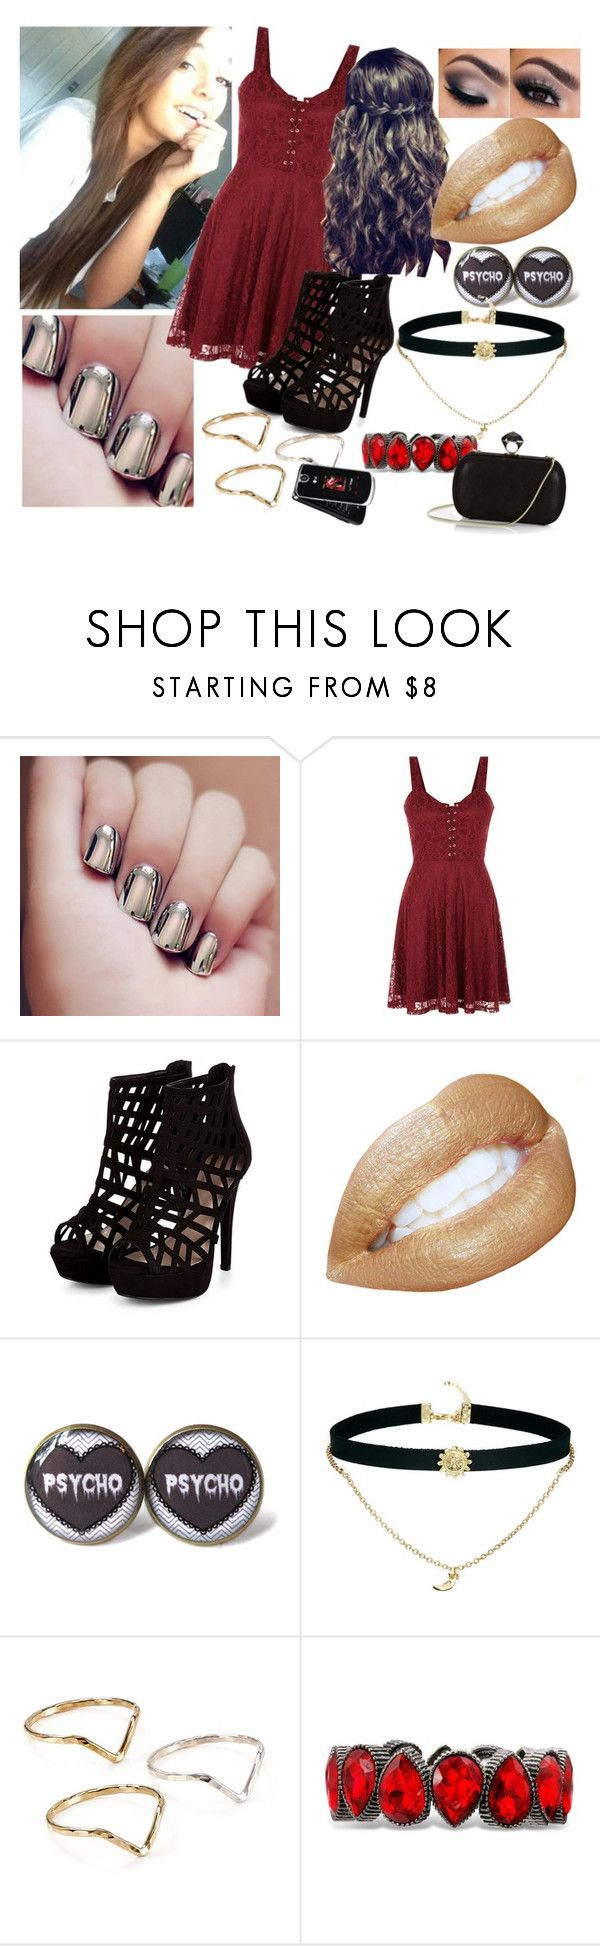 """""""Hades Daughter (Prom)"""" by colliner13 ❤ liked on Polyvore featuring ASOS, Phyllis + Rosie, DVF and LG"""